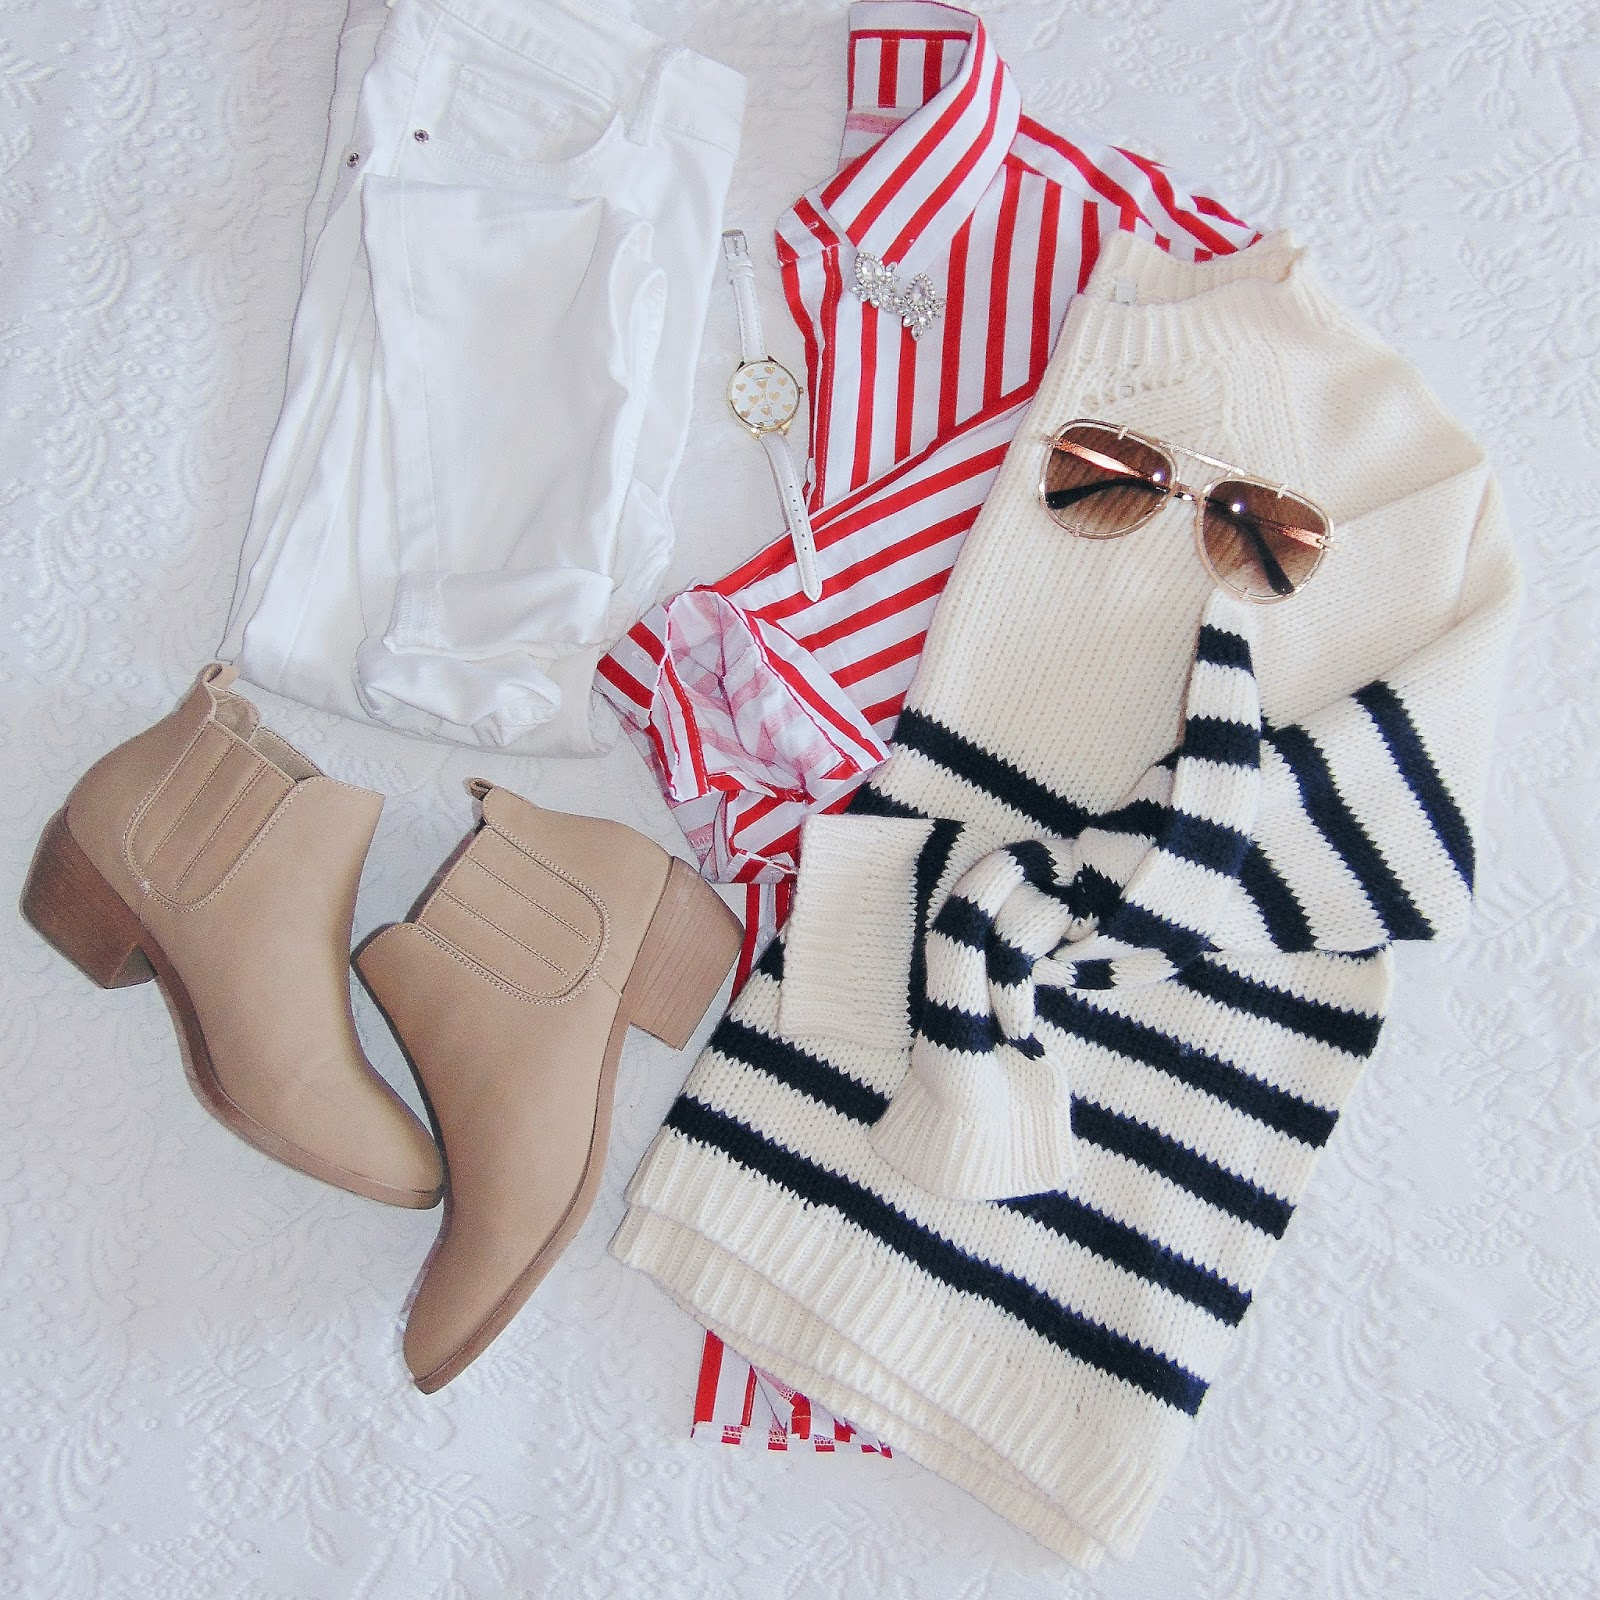 zaful outfit, red striped blouse